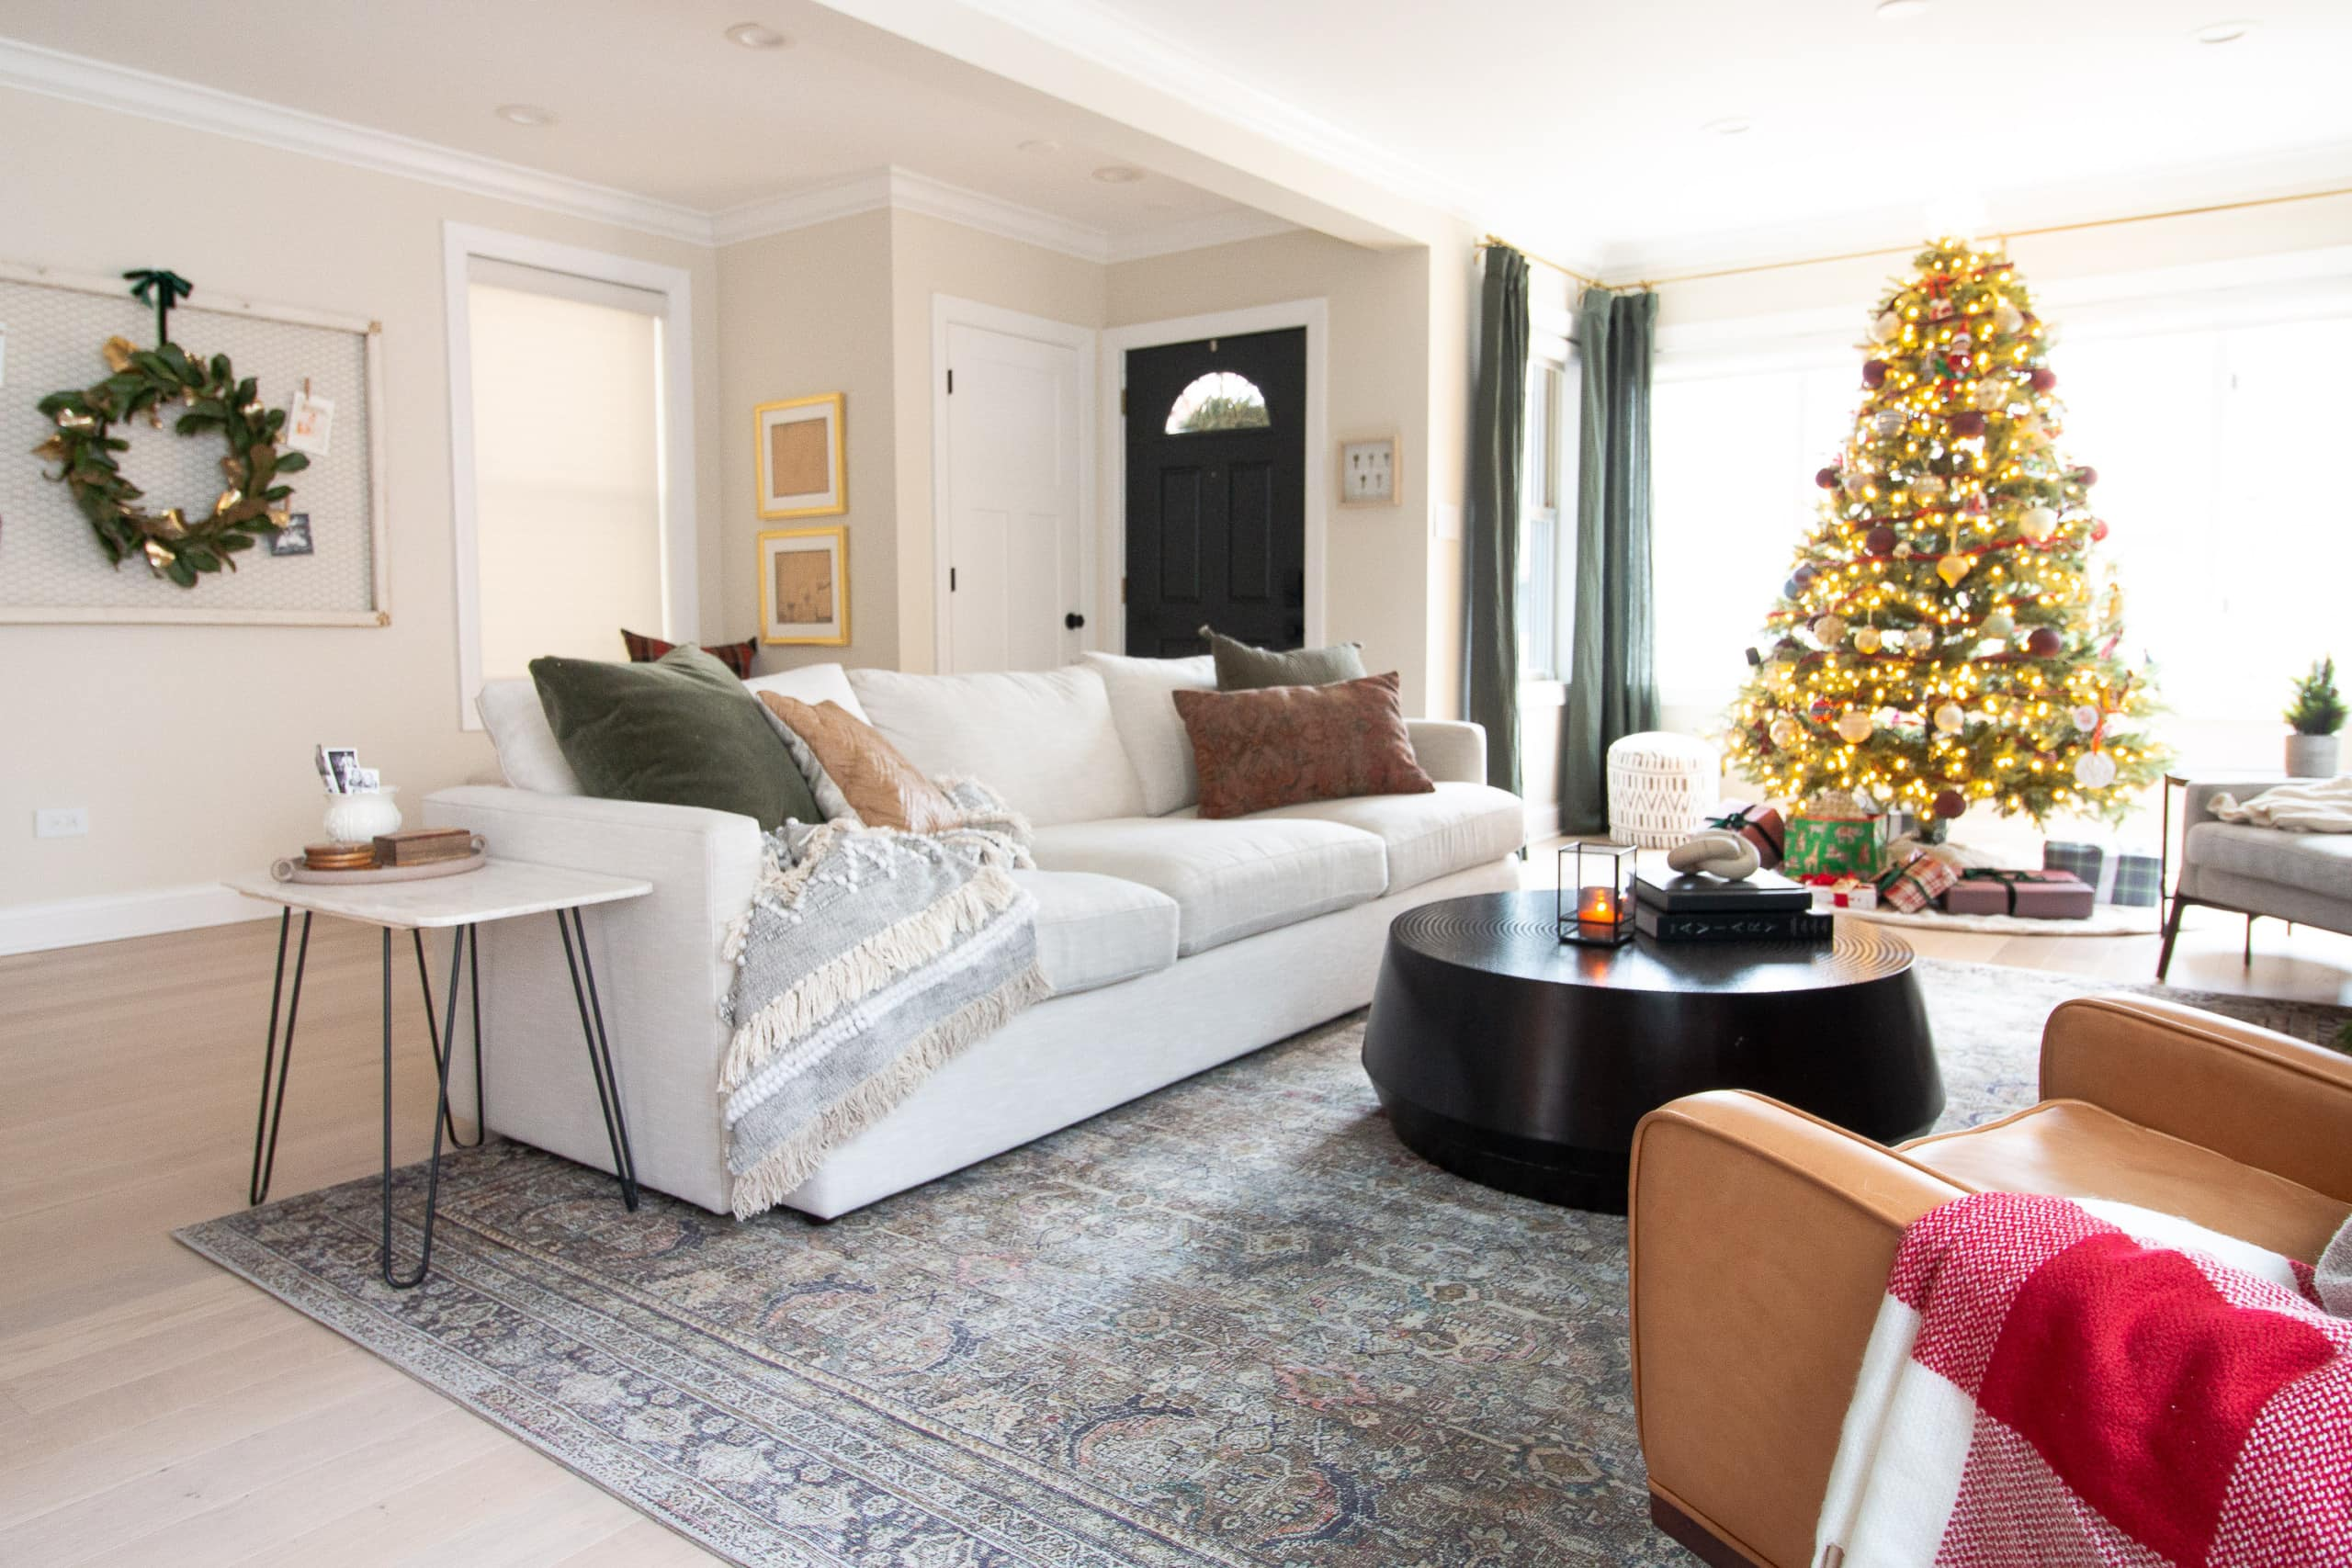 Tips to decorate for Christmas